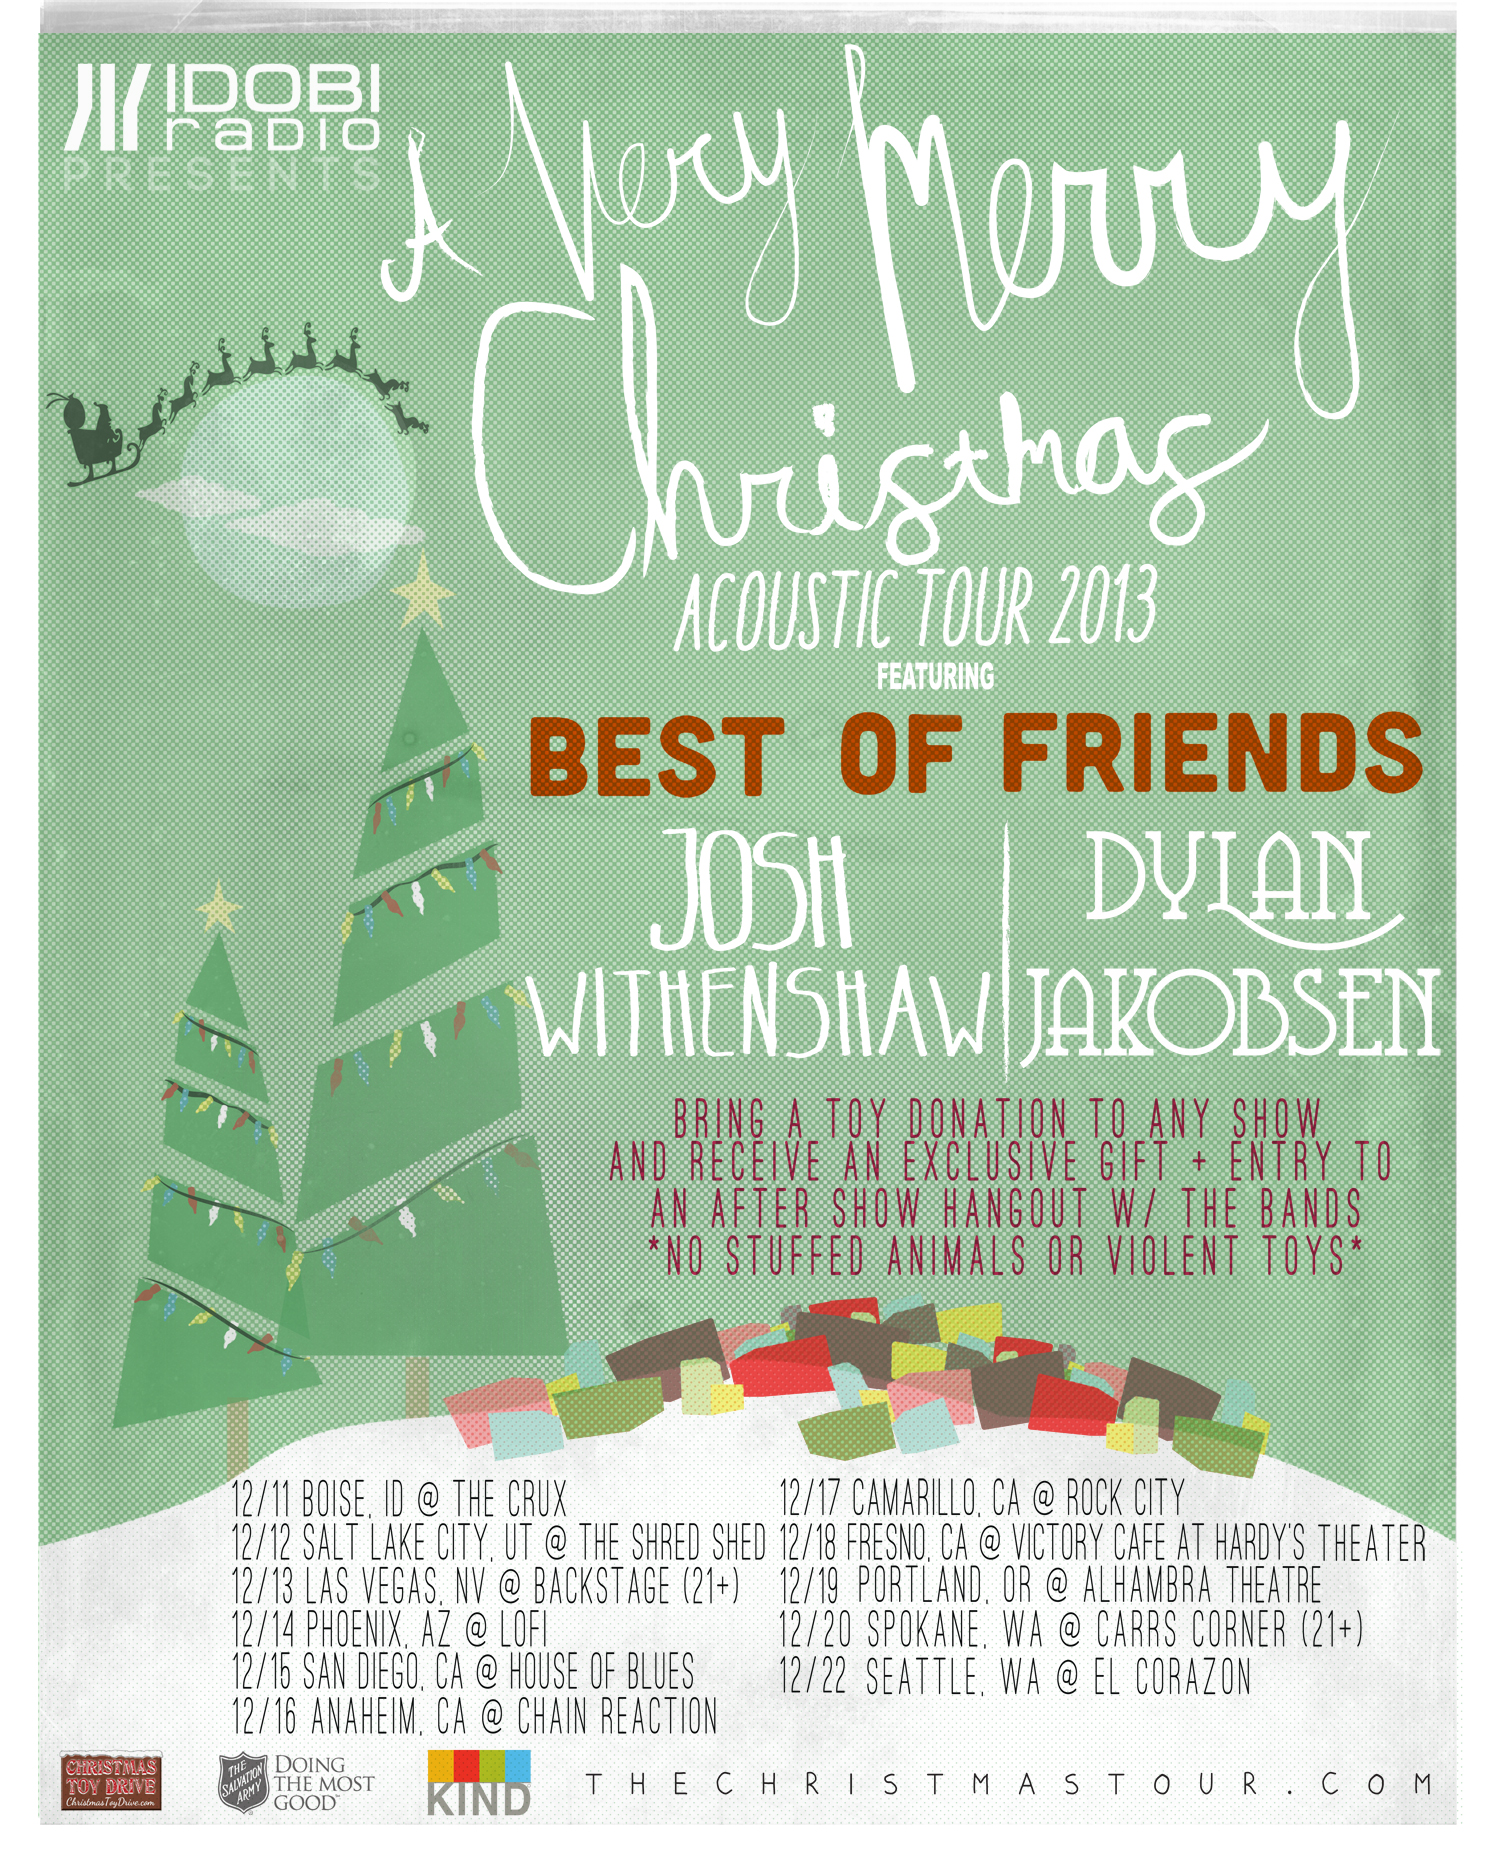 Idobi Presents A Very Merry Christmas Acoustic Tour Idobi